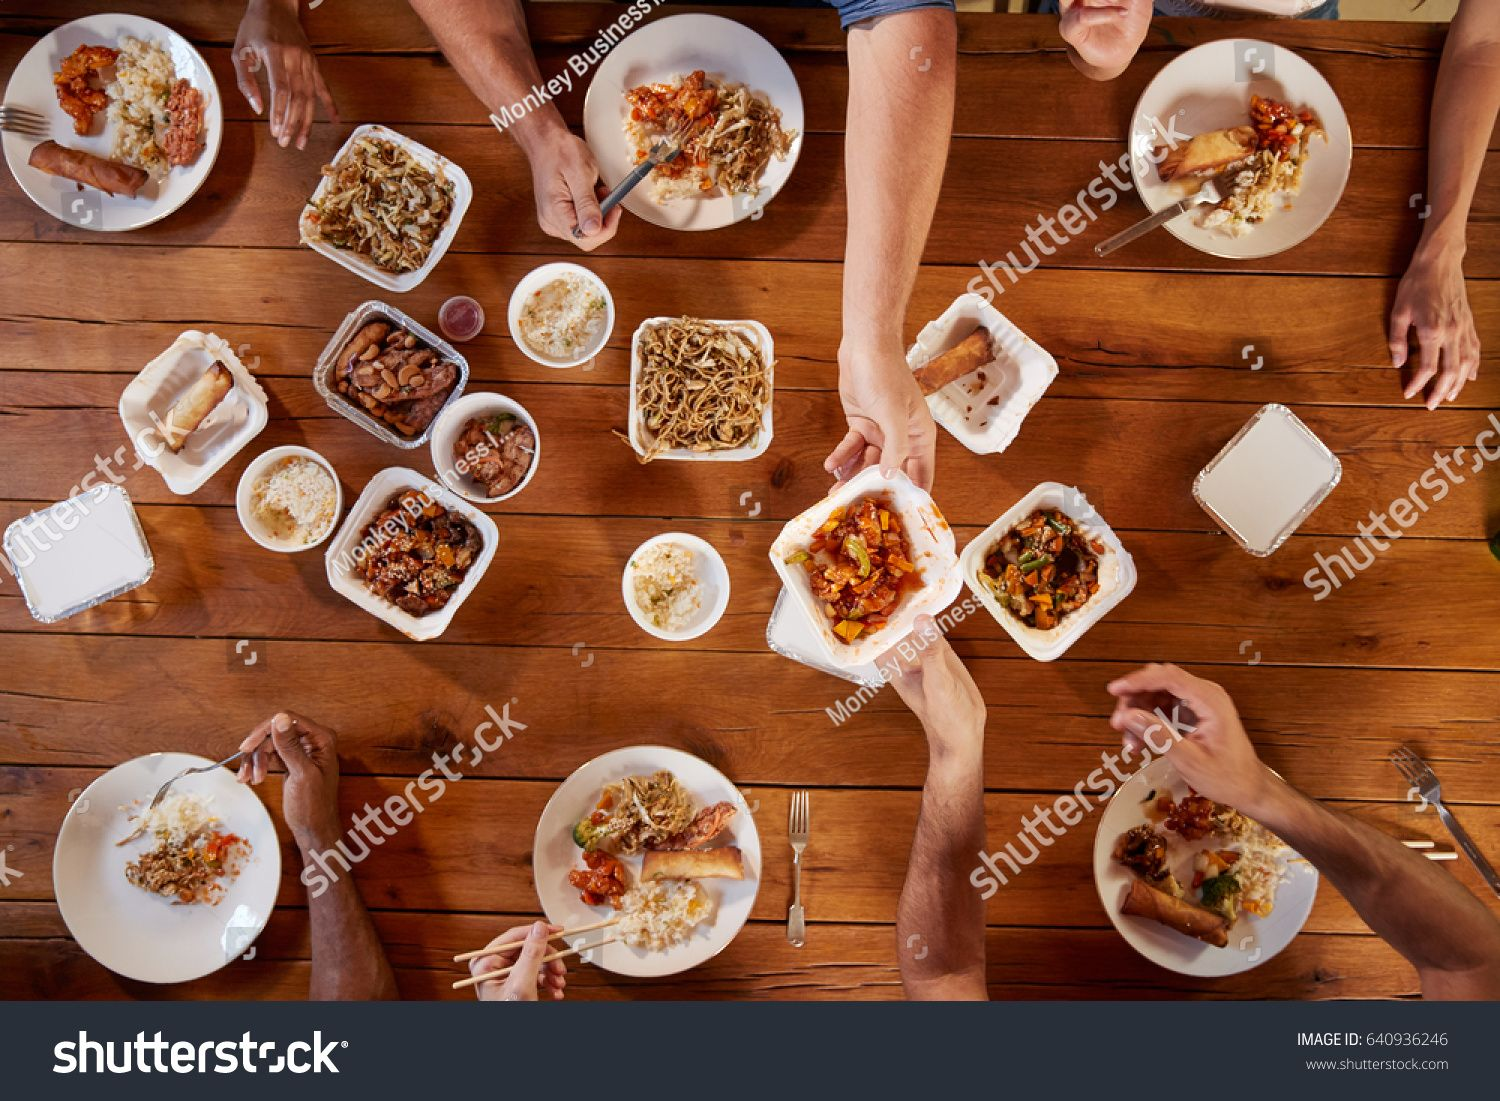 Friends At A Table Sharing Chinese Take Away Overhead View Ad Sponsored Sharing Table Friends View In 2020 Food Borne Illness Food Food Safety